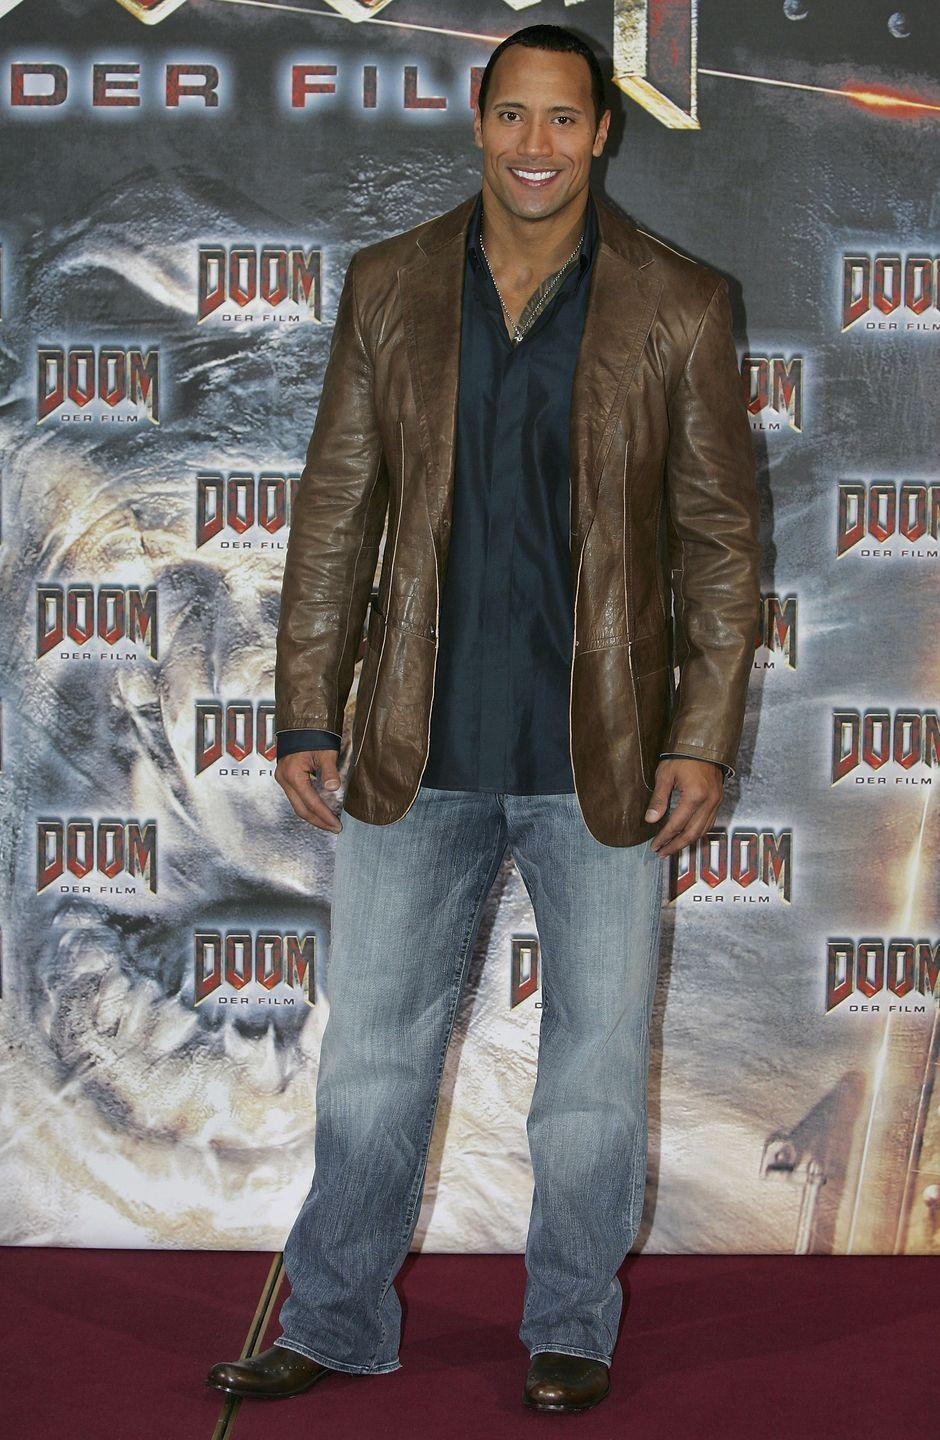 """<p>At a Berlin photocall for the movie <em>Doom</em>, The Rock, ehem, rocked the """"guy waiting in line outside a night club"""" look, including huge jeans, a shiny shirt, a leather jacket, and a silver chain necklace.</p>"""